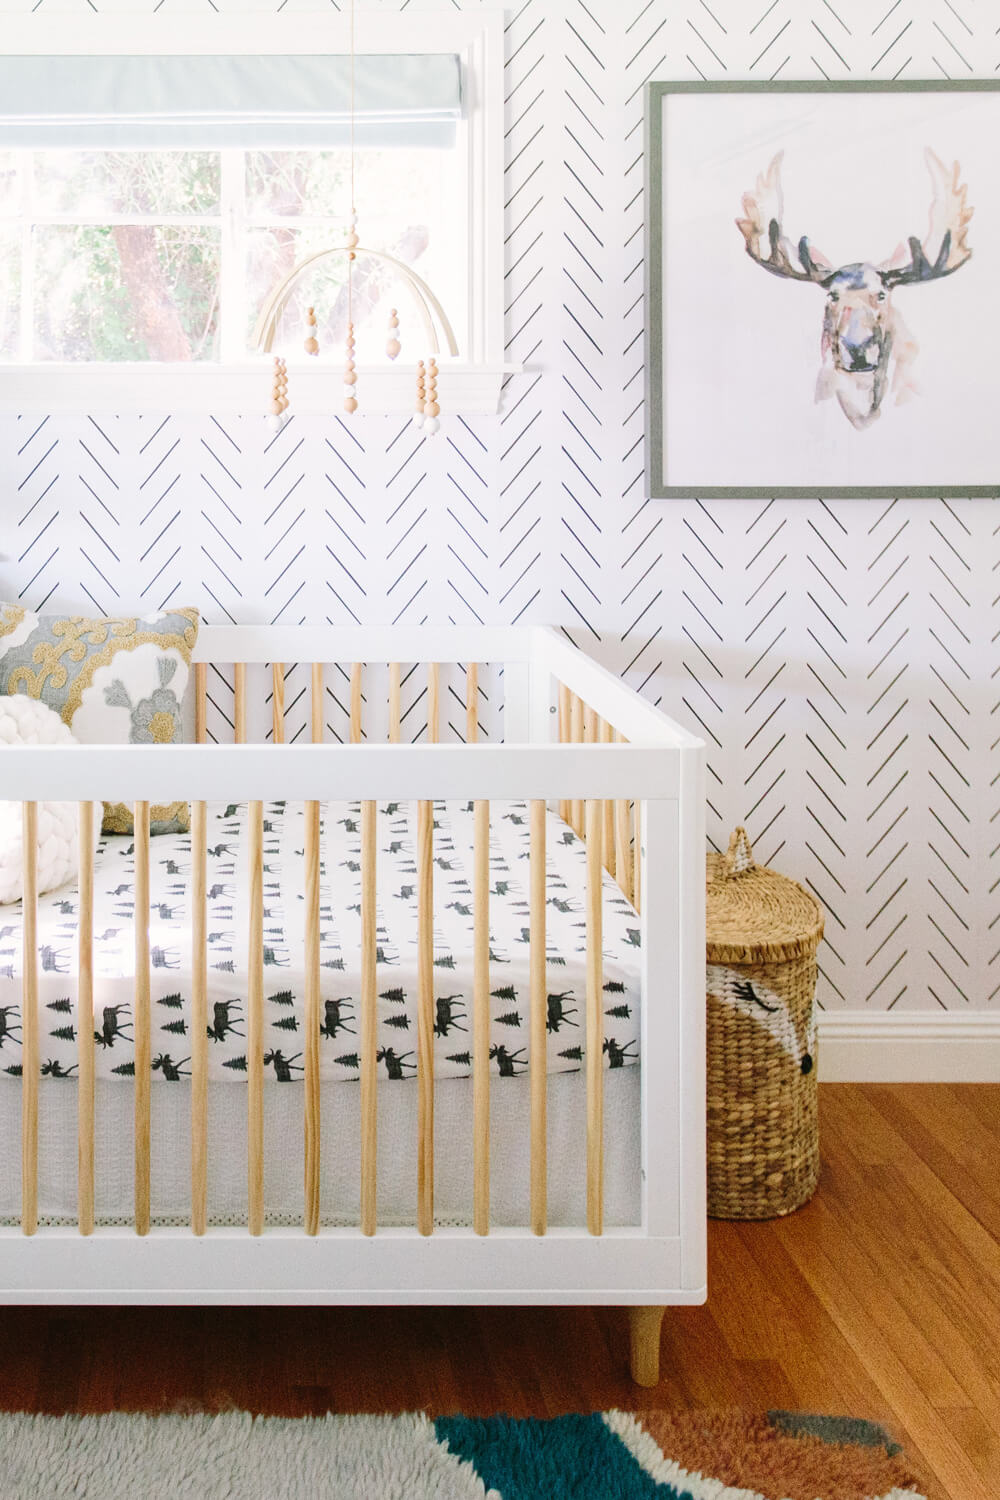 Modern woodland theme nursery with forest animals crib sheets, moose art print and herringbone removable wallpaper